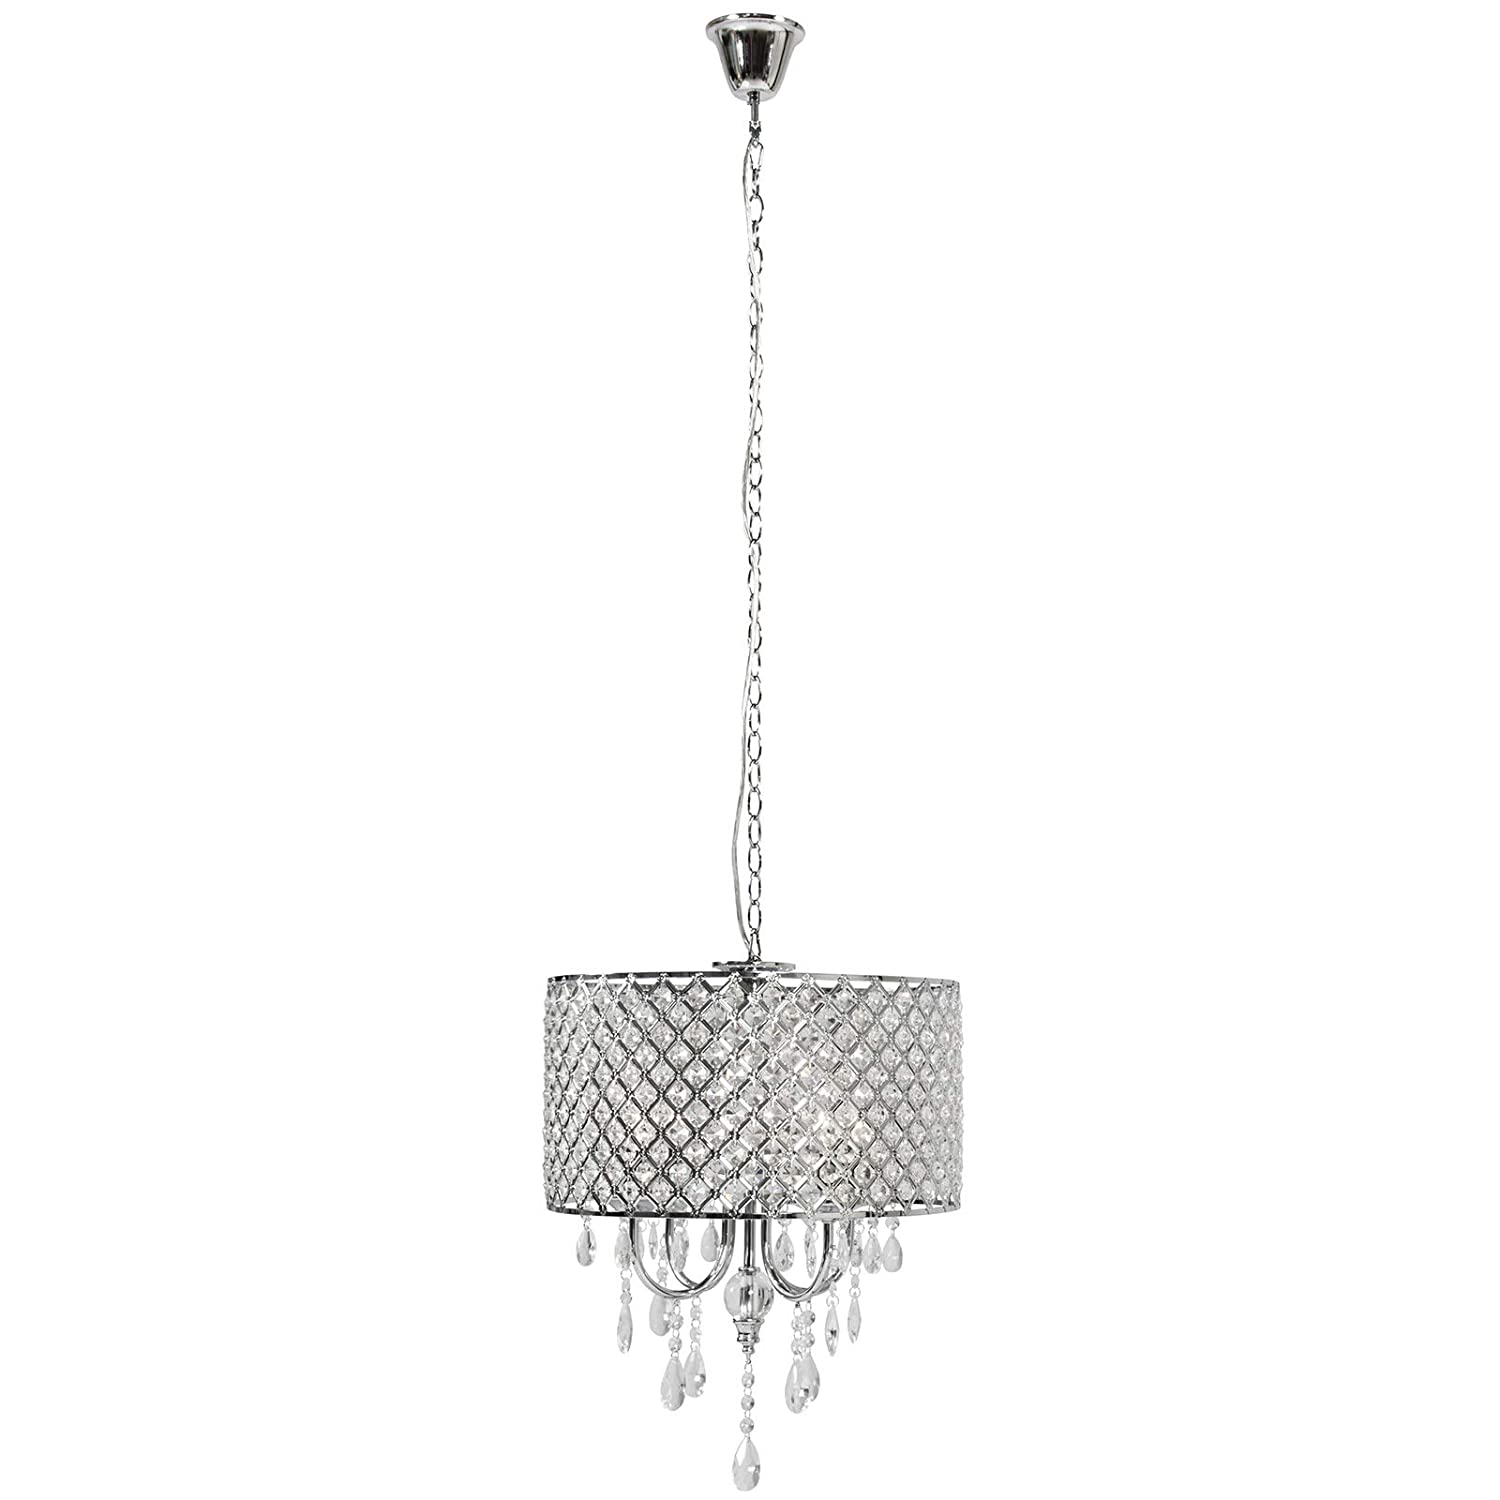 Best Choice Products Hanging 4-Light Crystal Beaded Glass Chandelier Pendant Ceiling Lamp Fixture for Foyer, Dining Room, Restaurant, Hotel, Silver